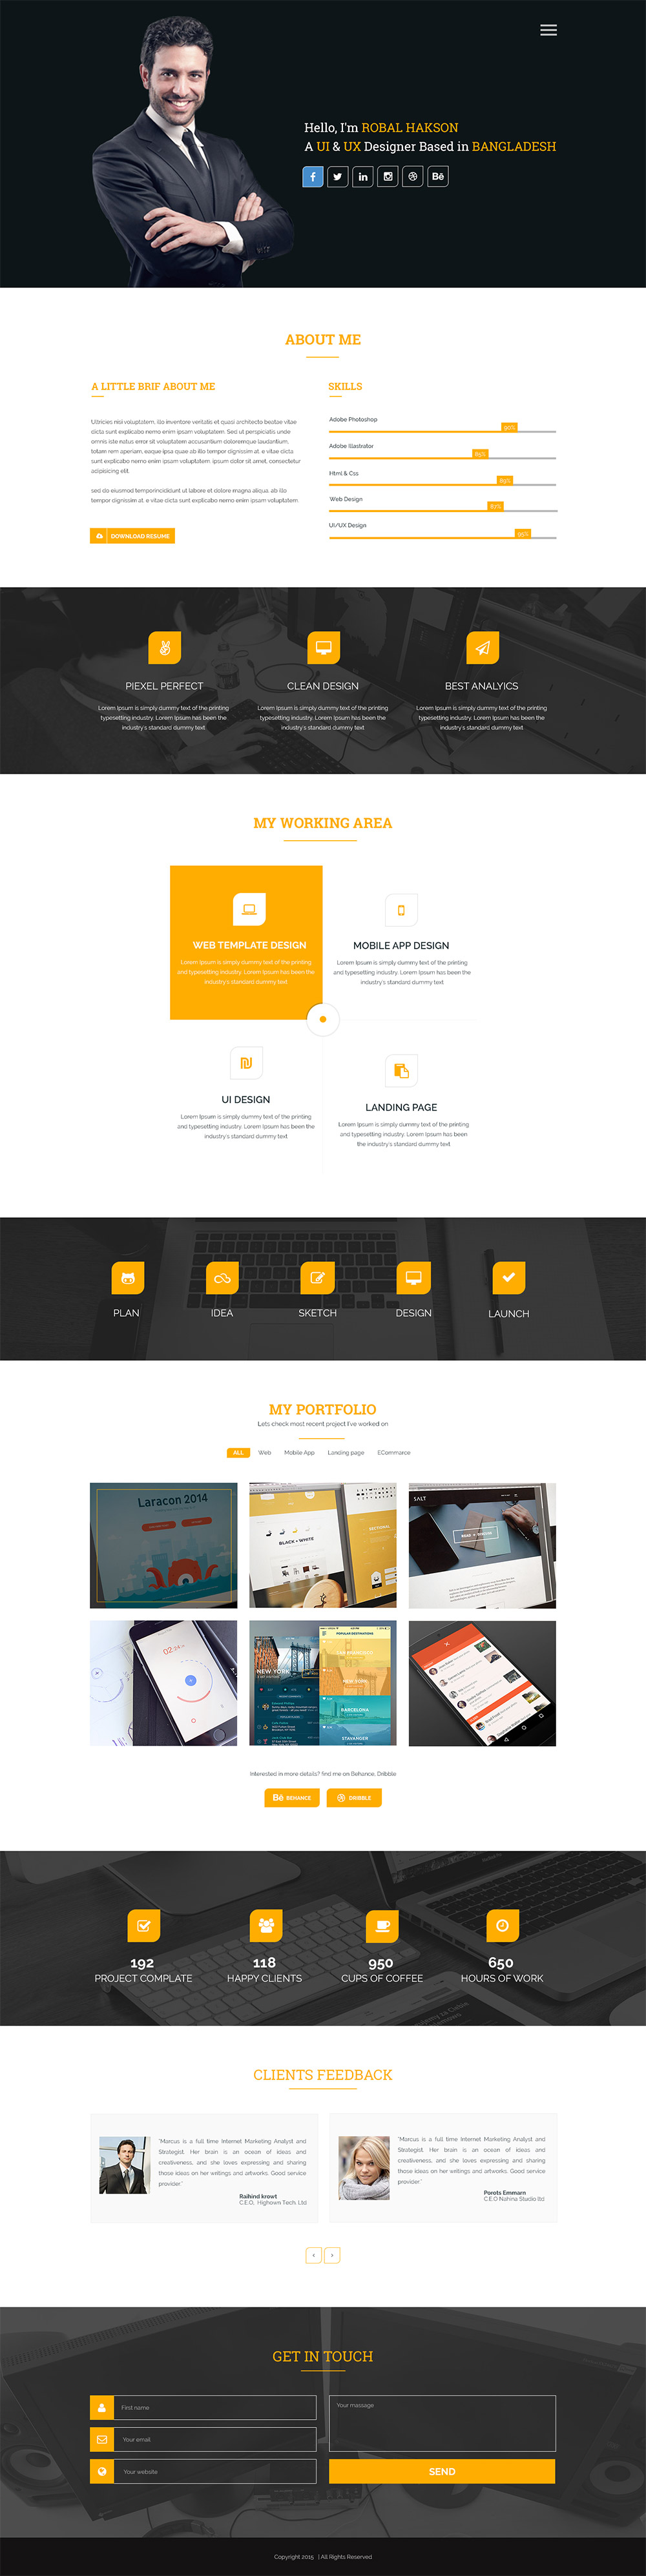 High quality 50 free corporate and business web templates psd high quality 50 free corporate and business web templates psd www work website download clean one page wajeb Choice Image